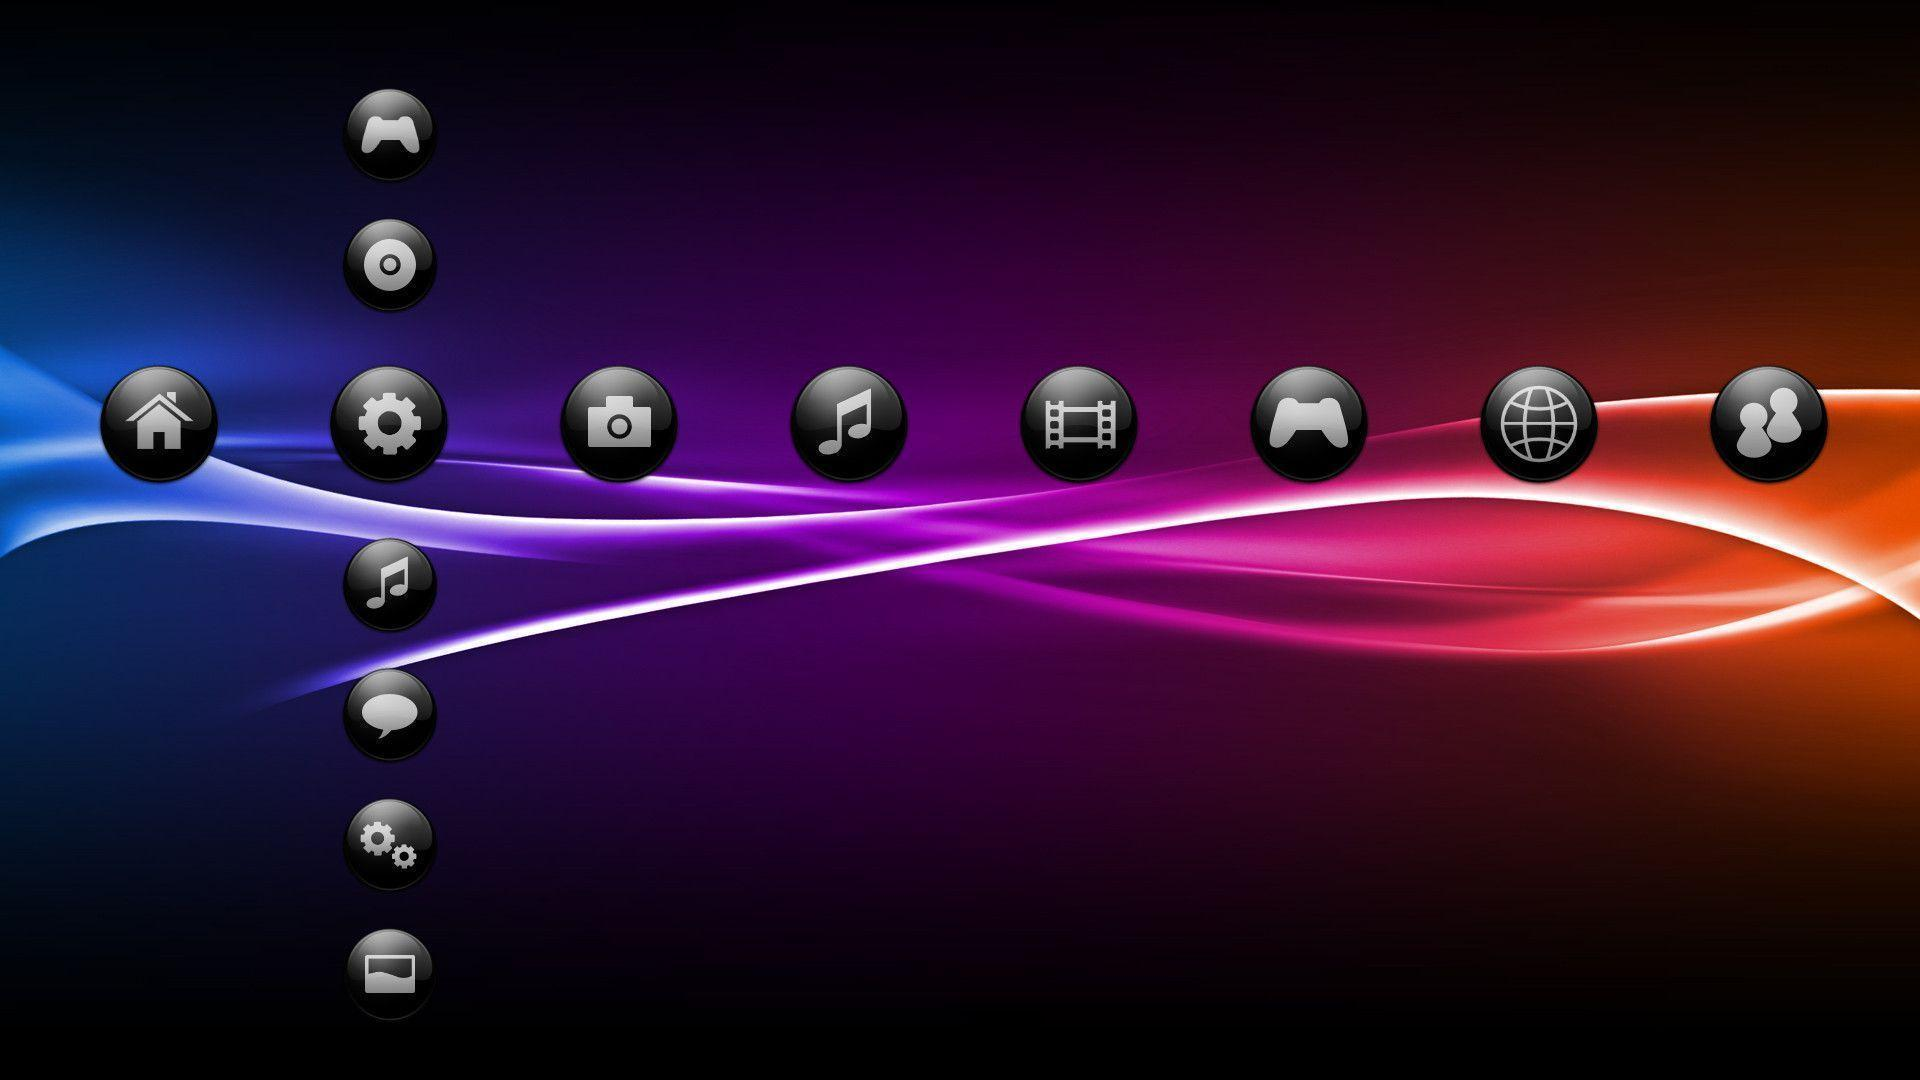 Neon theme for PS3 by JyriK